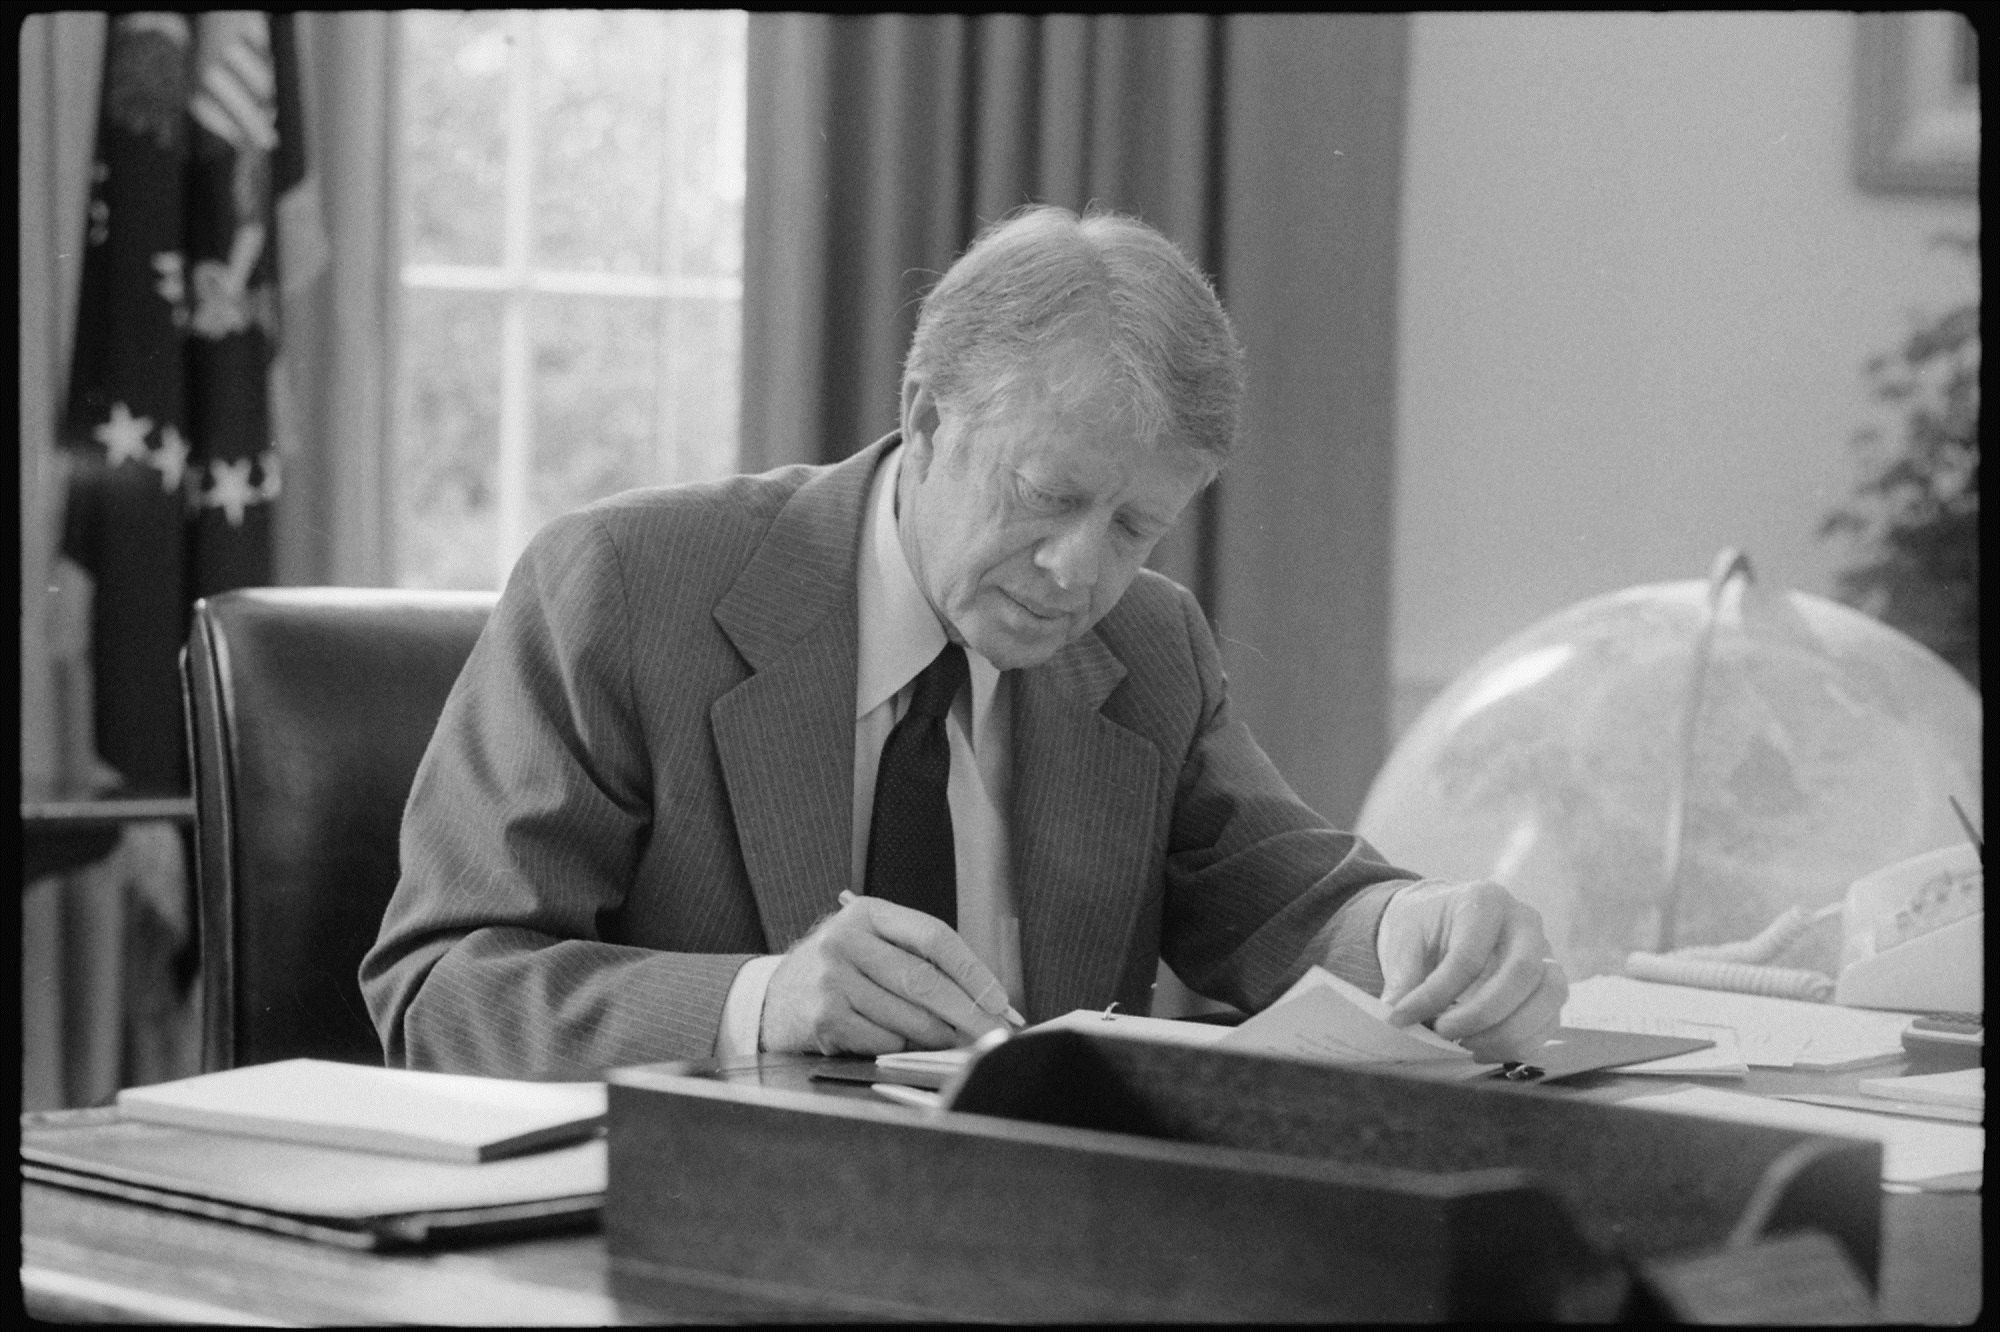 Jimmy Carter acabaria por perder as eleições contra Reagan em parte por causa do embargo de cereal.